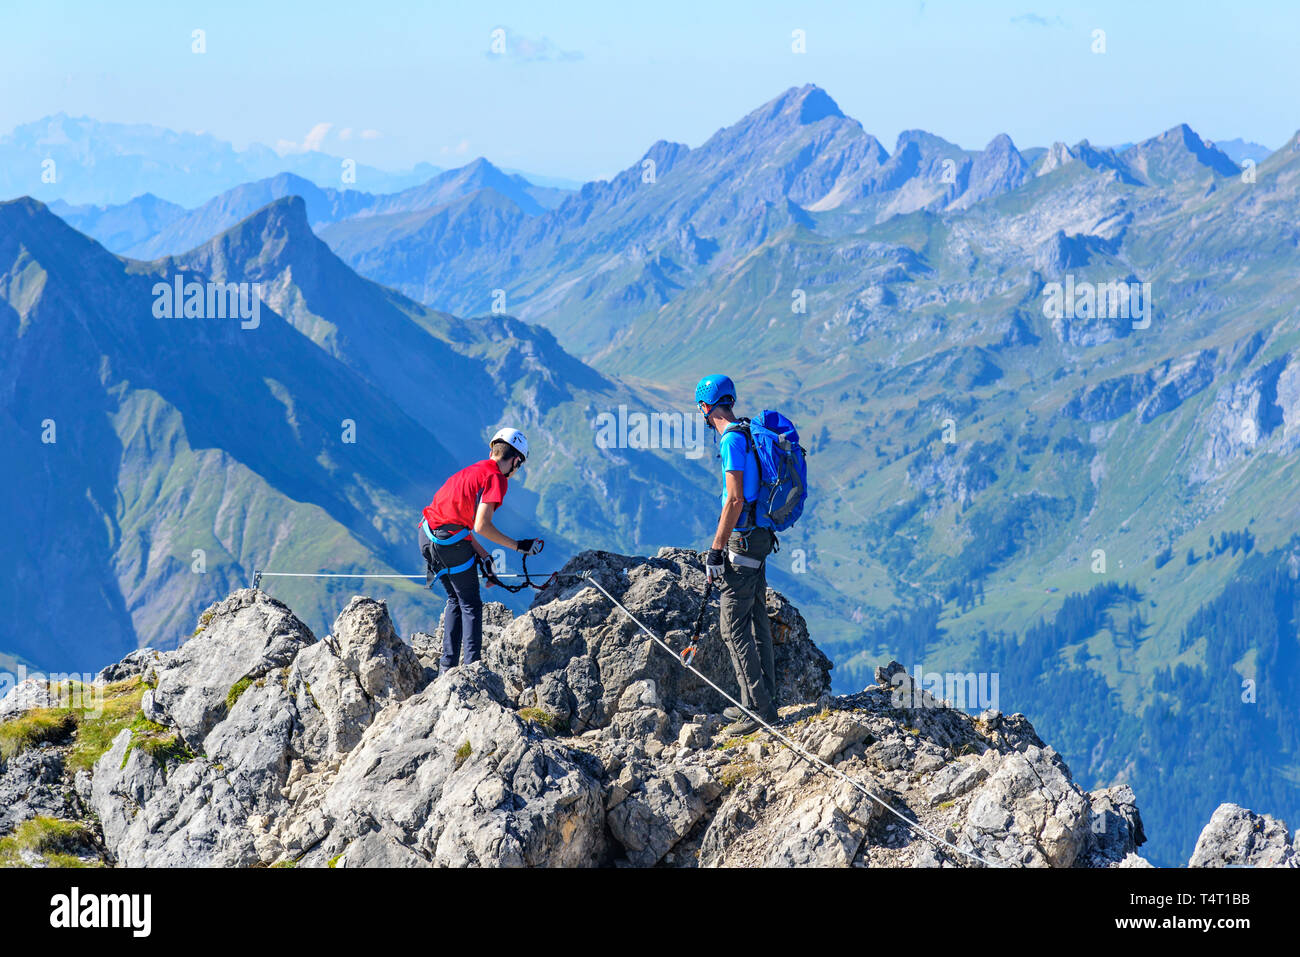 Impressive climbing on safeguarded via ferrata in western austria - Stock Image